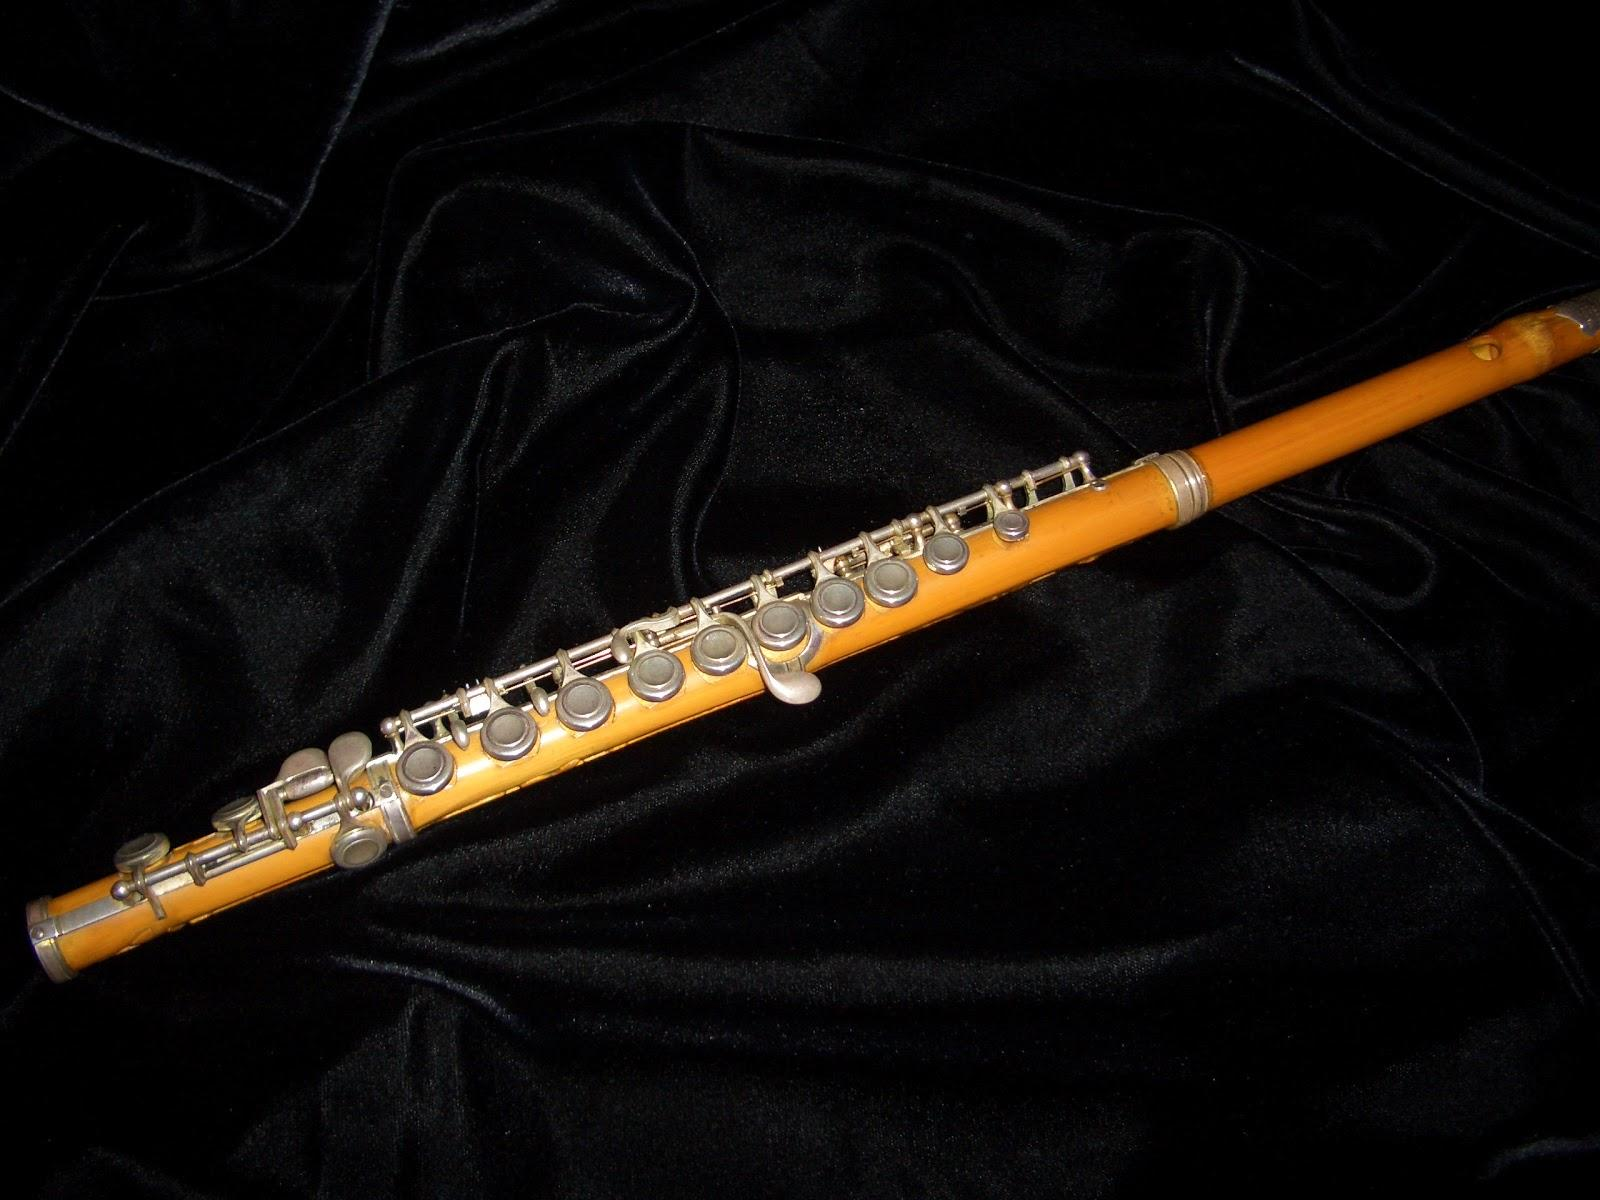 Flute Builder : The Bamboo Flute